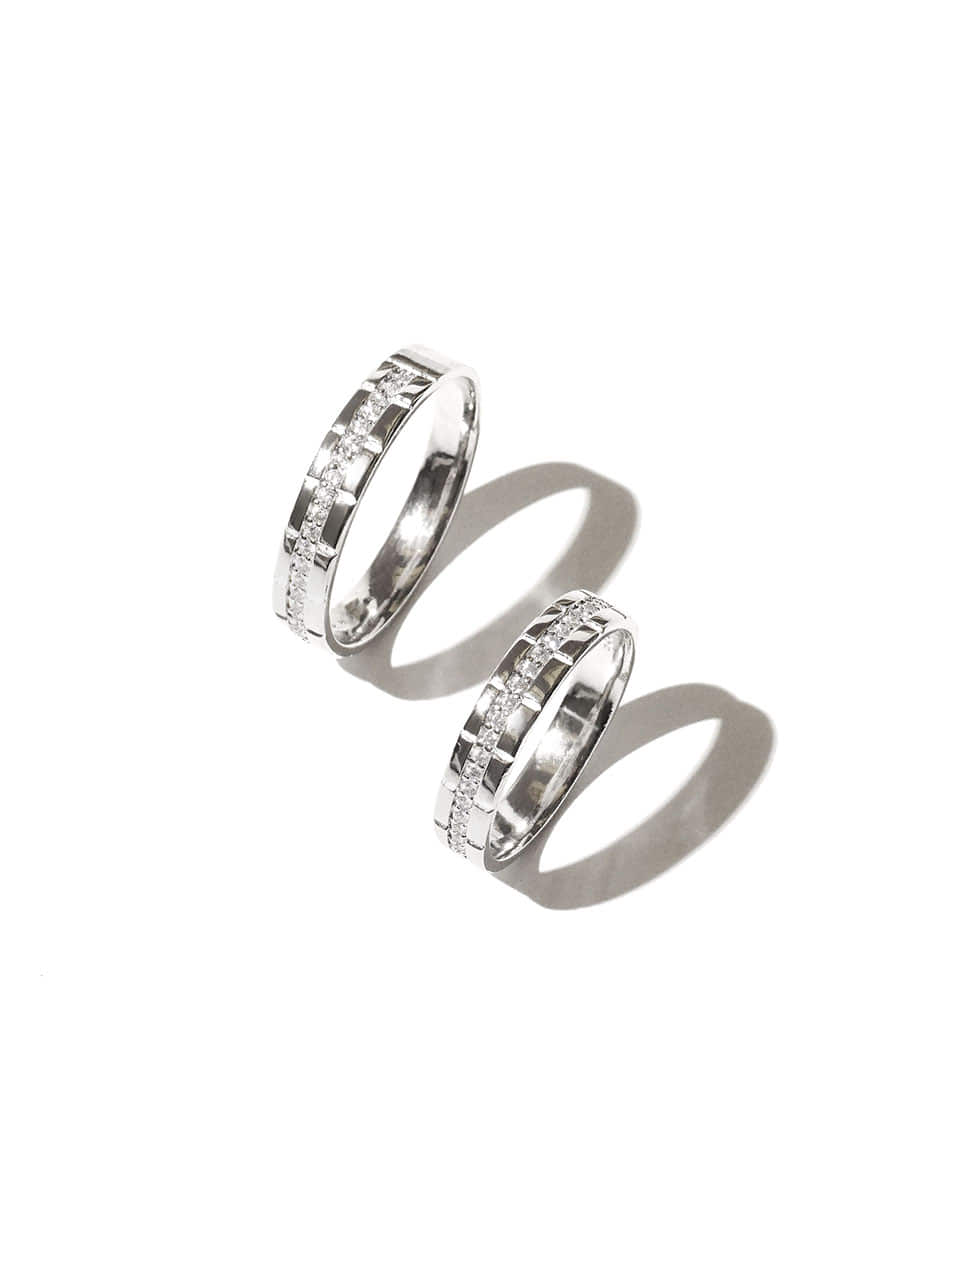 Middle cubic couple ring (Sterling silver 925)